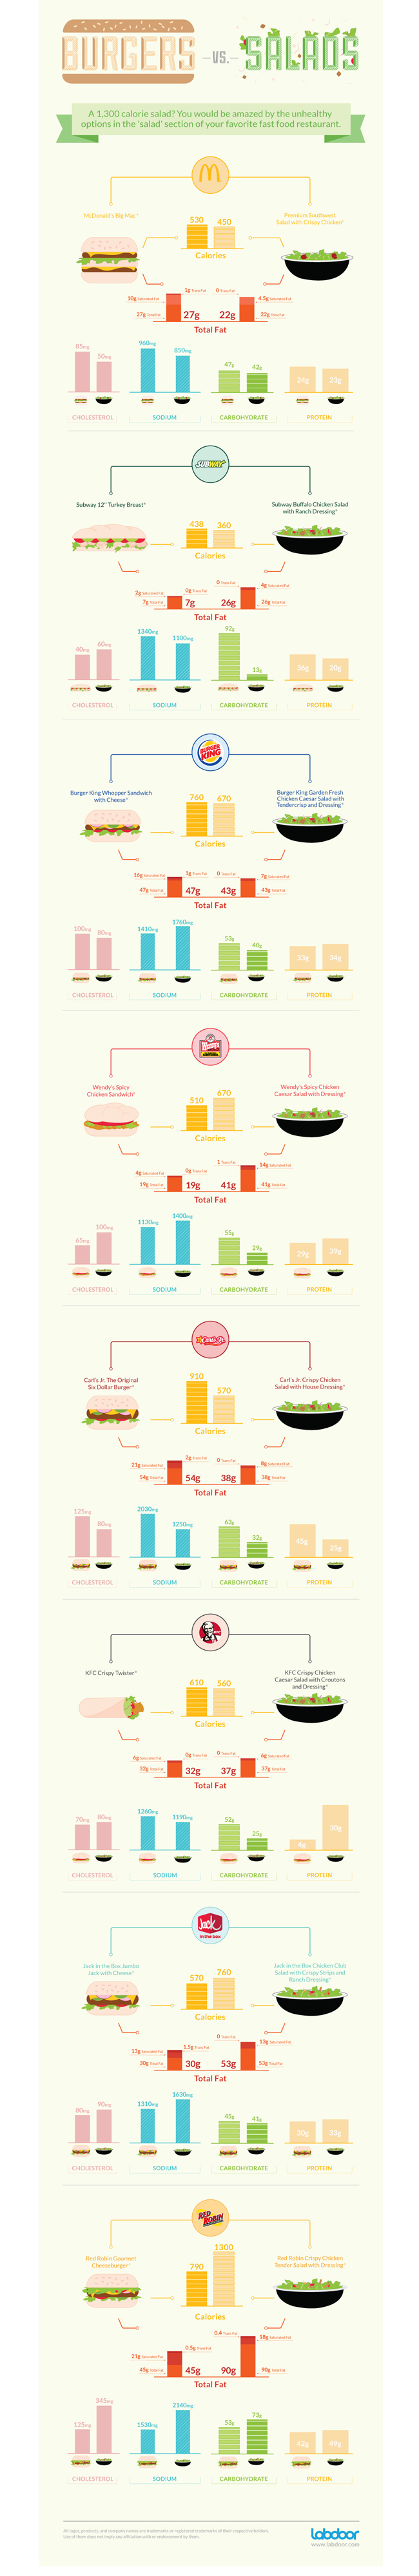 Burger vs salad